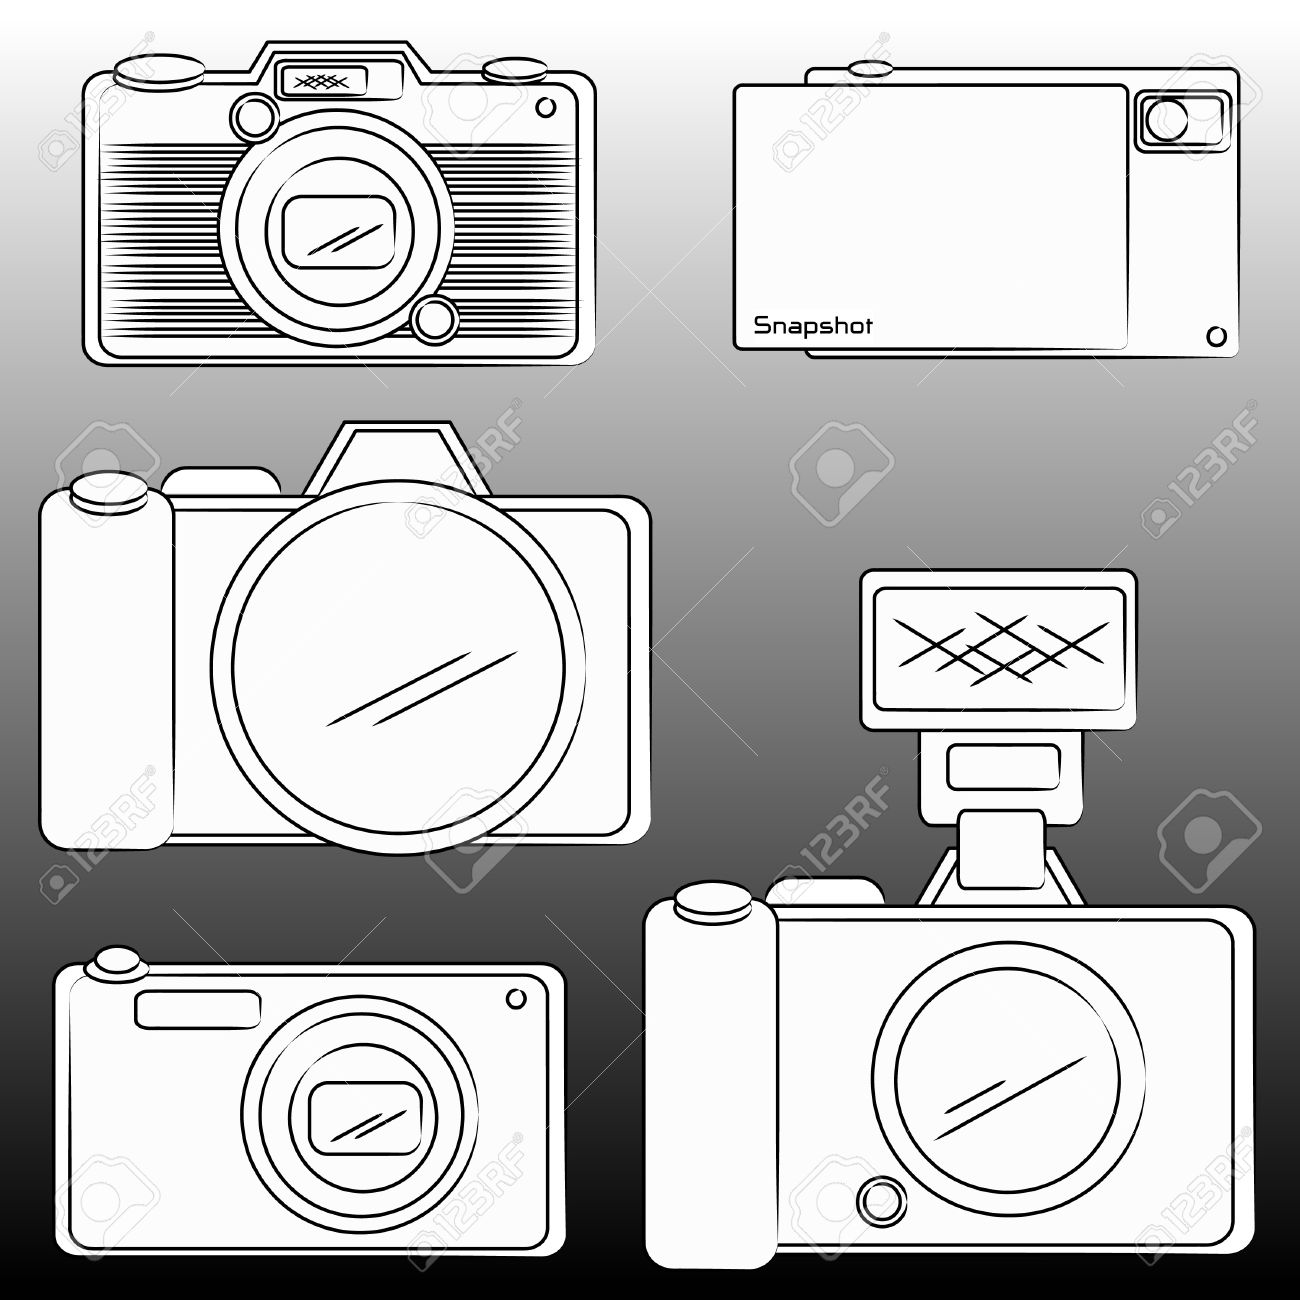 The pencil sketch of dslr and camera stock vector 9769636